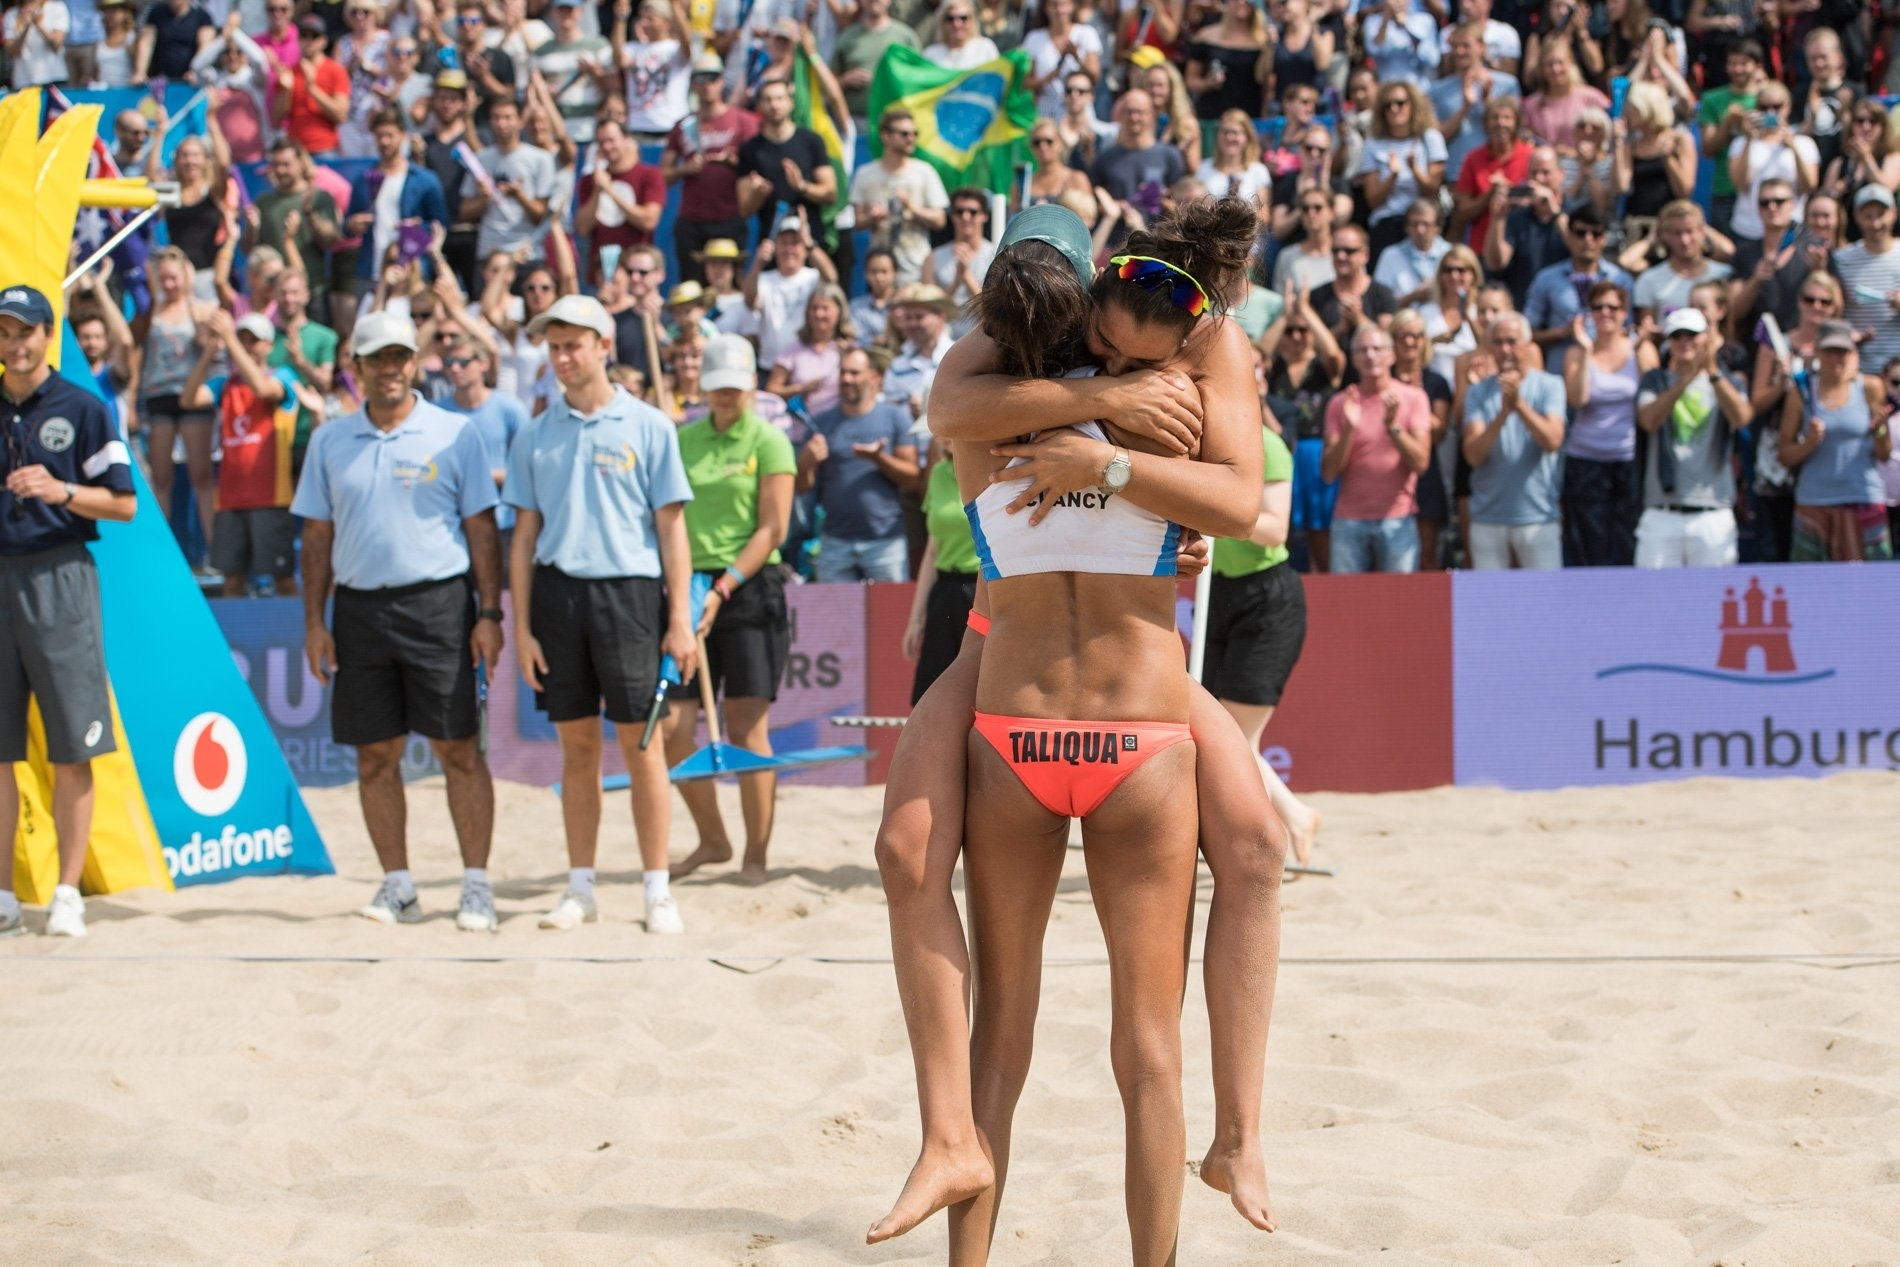 The moment the bronze medal was captured at the Red Bull Beach Arena